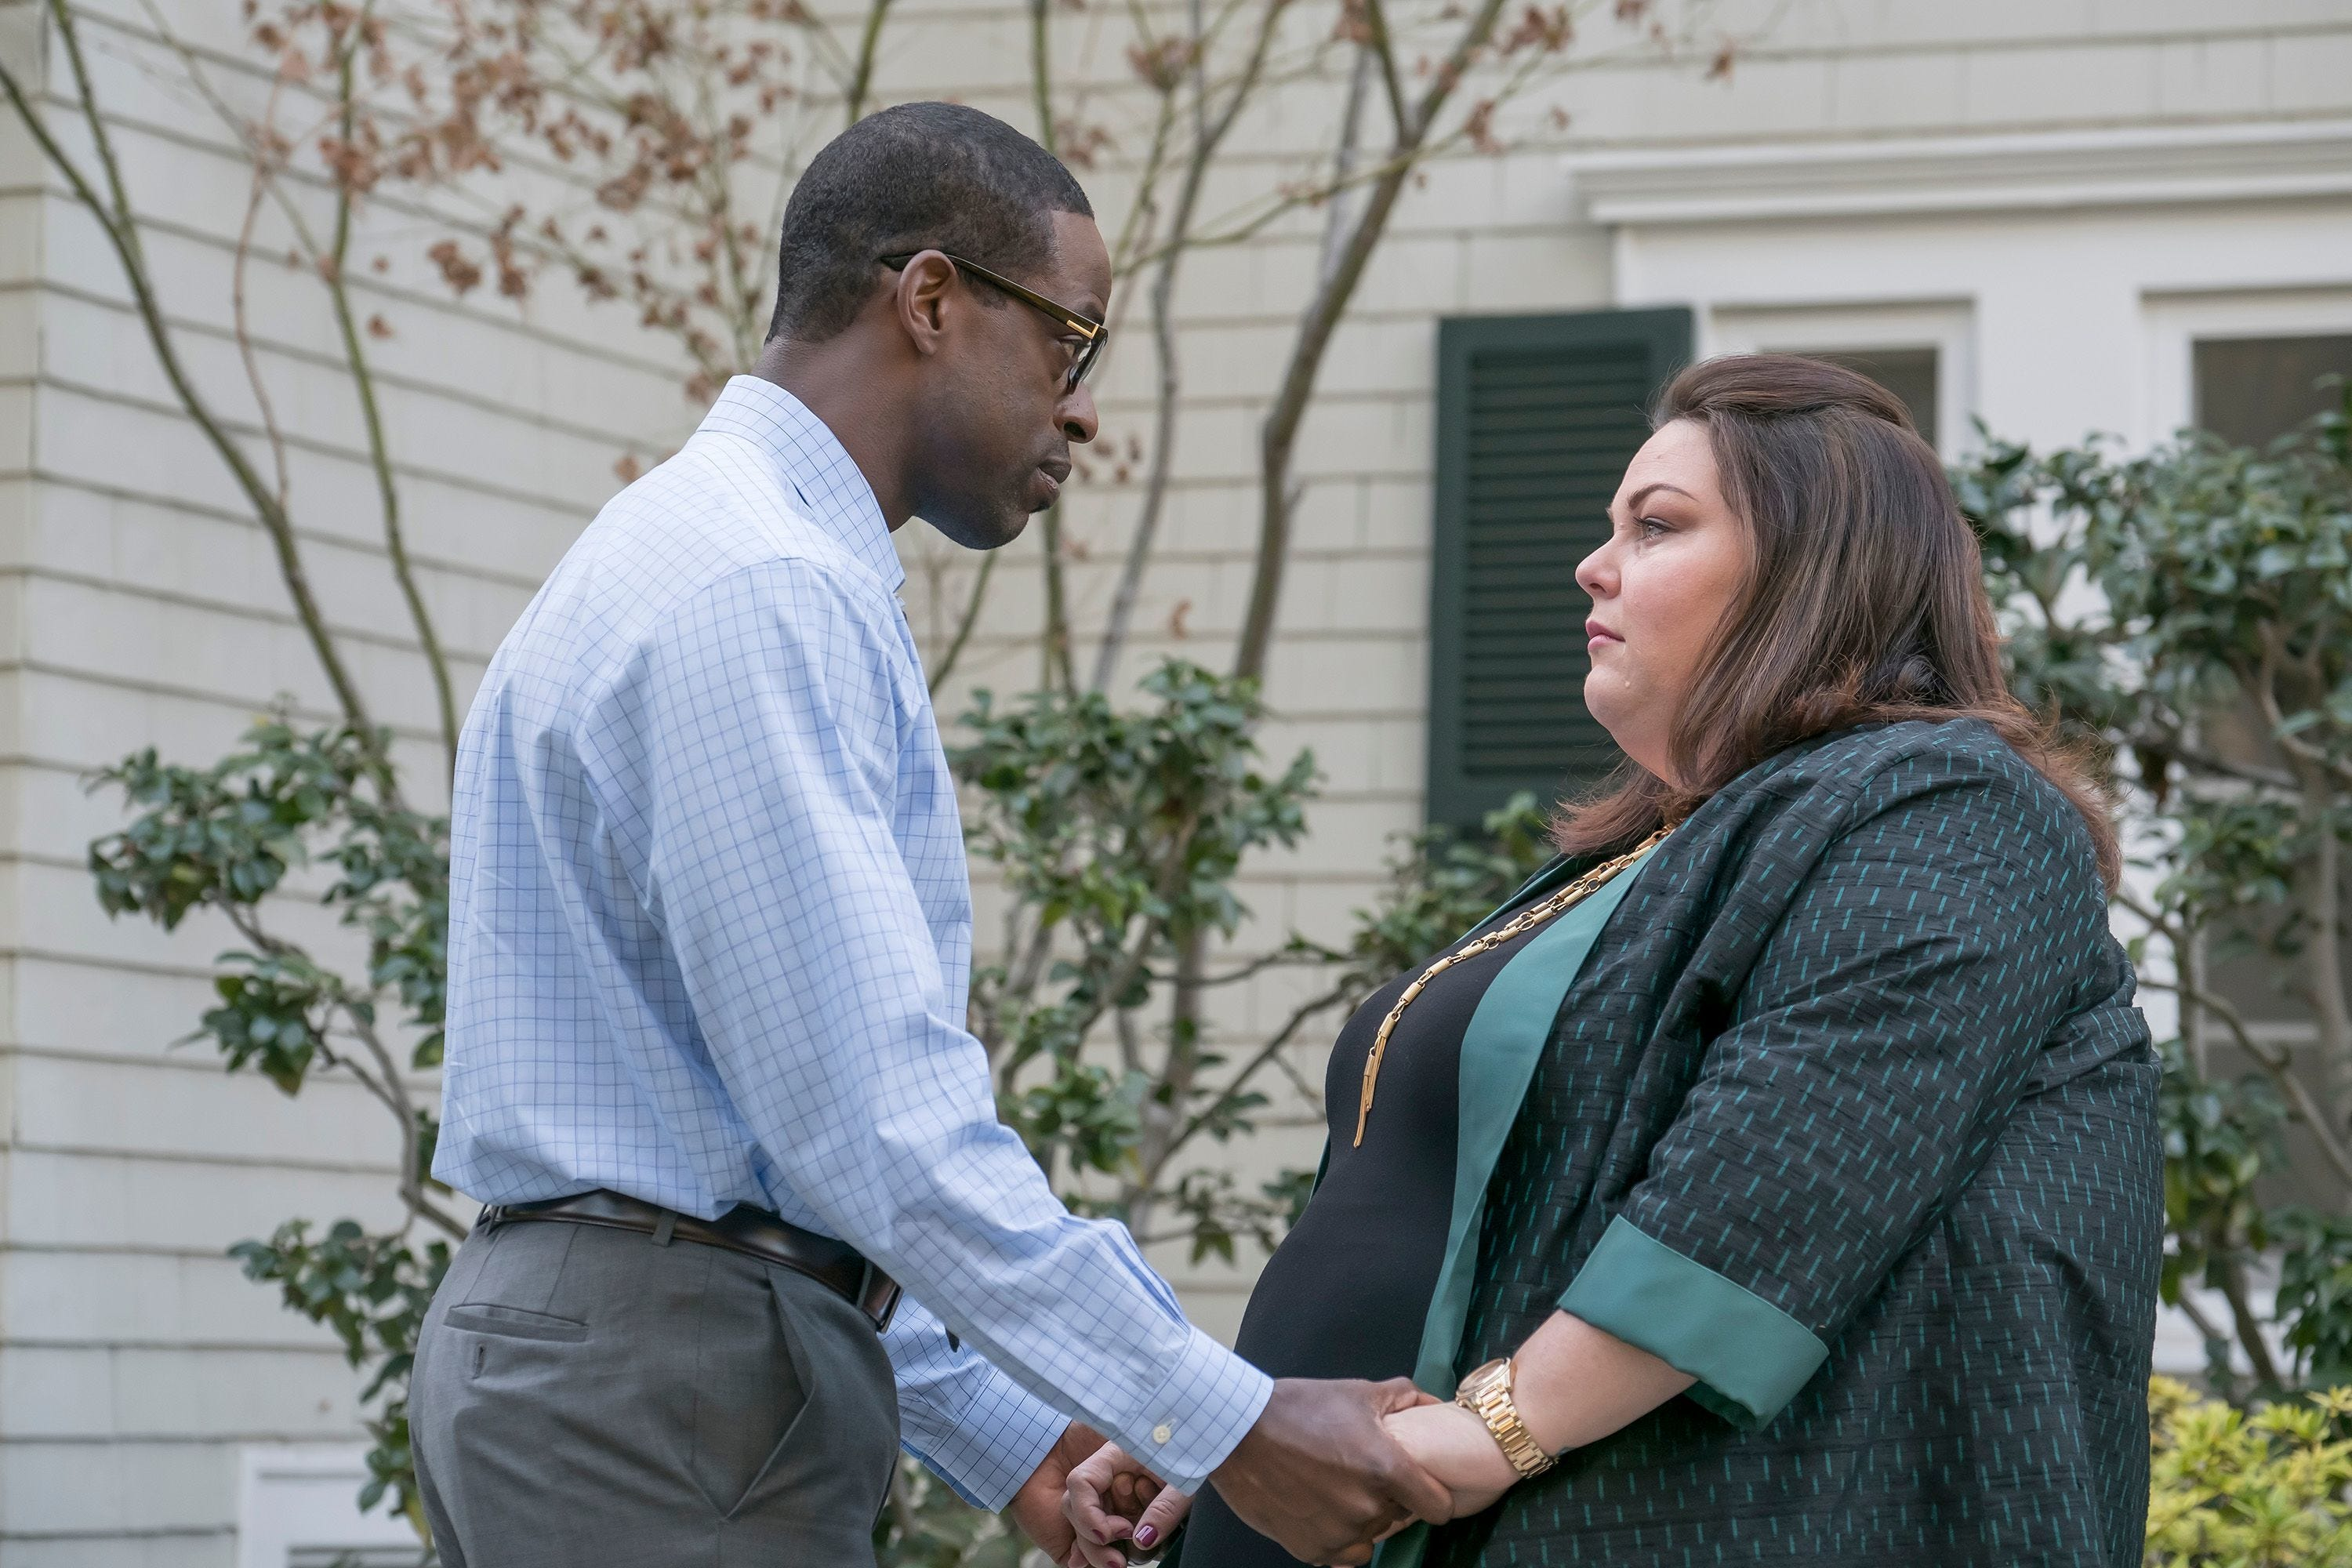 'This Is Us': Toxic stress on TV is reality for many Americans